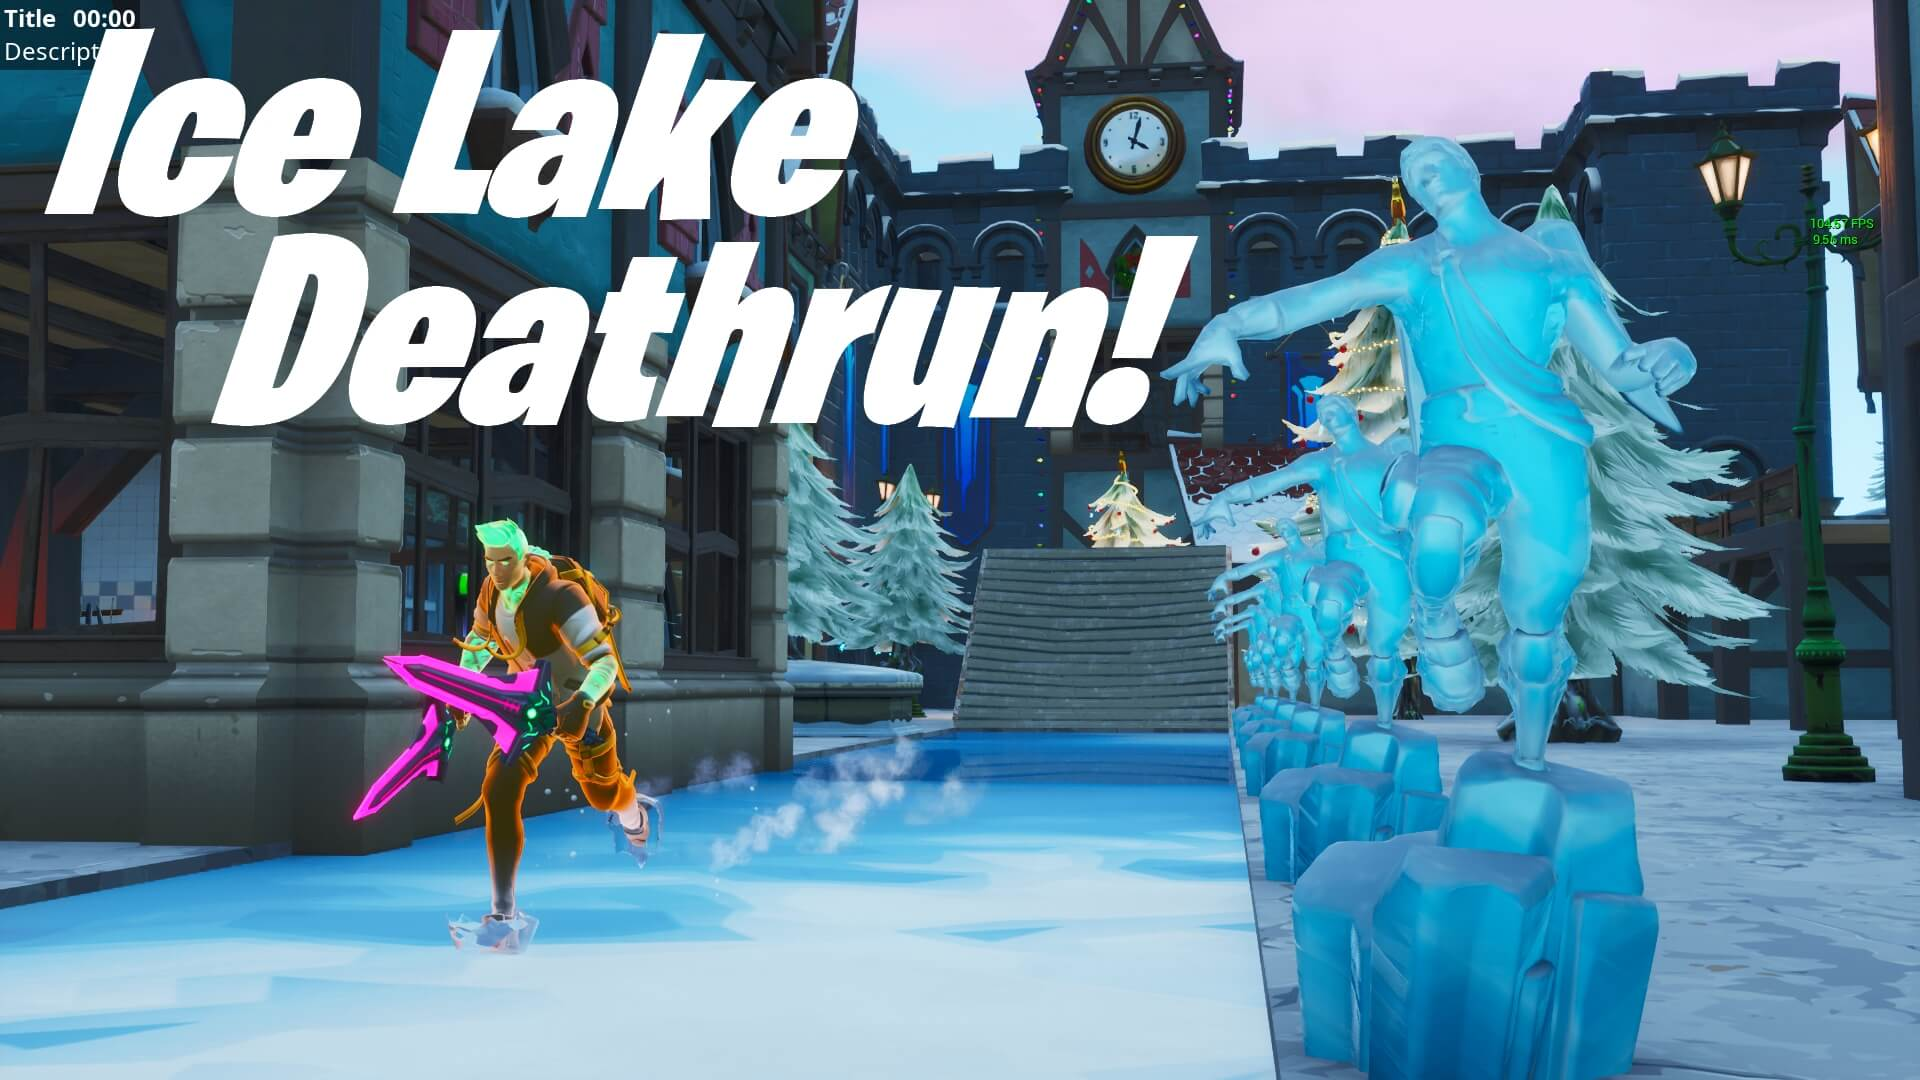 ICE LAKE DEATHRUN!